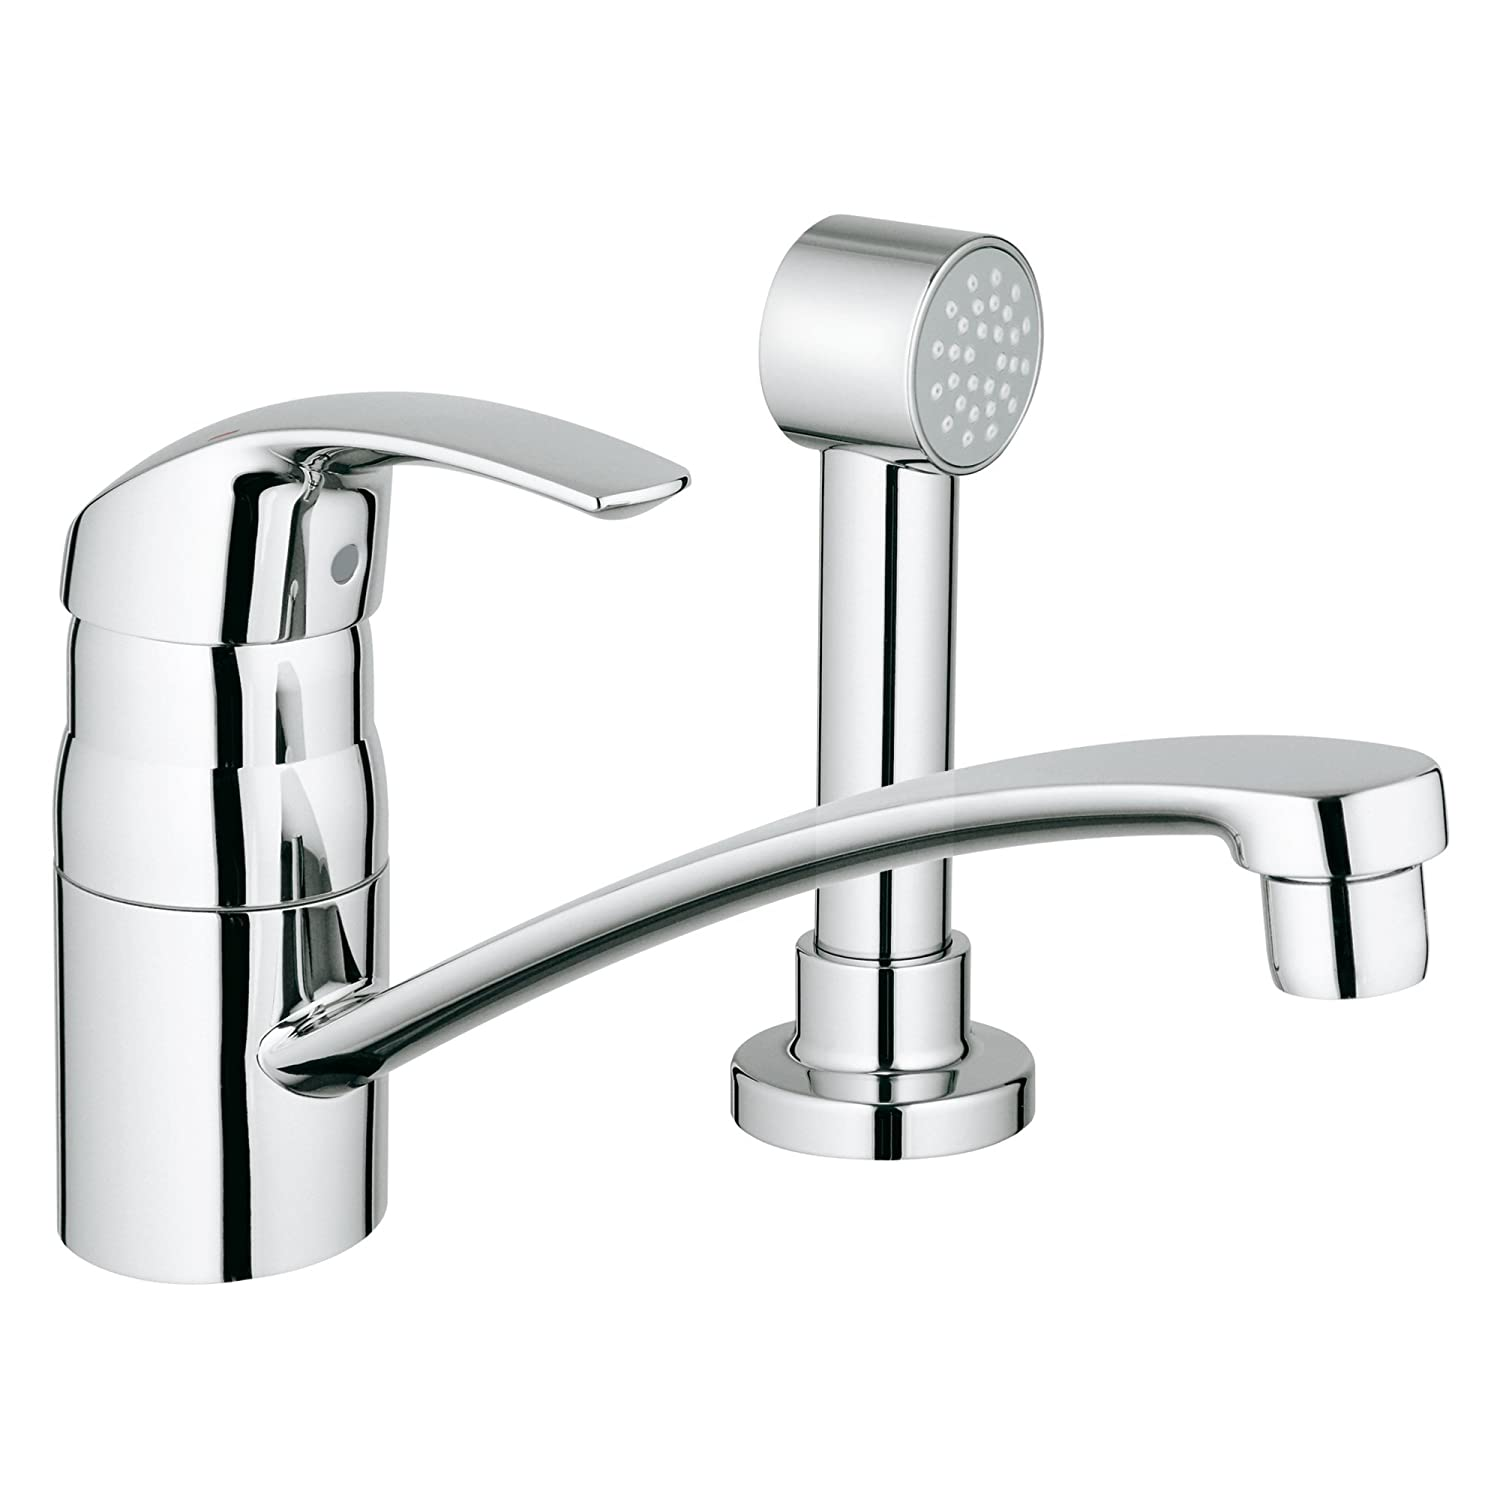 Eurosmart Centerset Single Handle Kitchen Faucet With Side Spray   Touch On  Kitchen Sink Faucets   Amazon.com